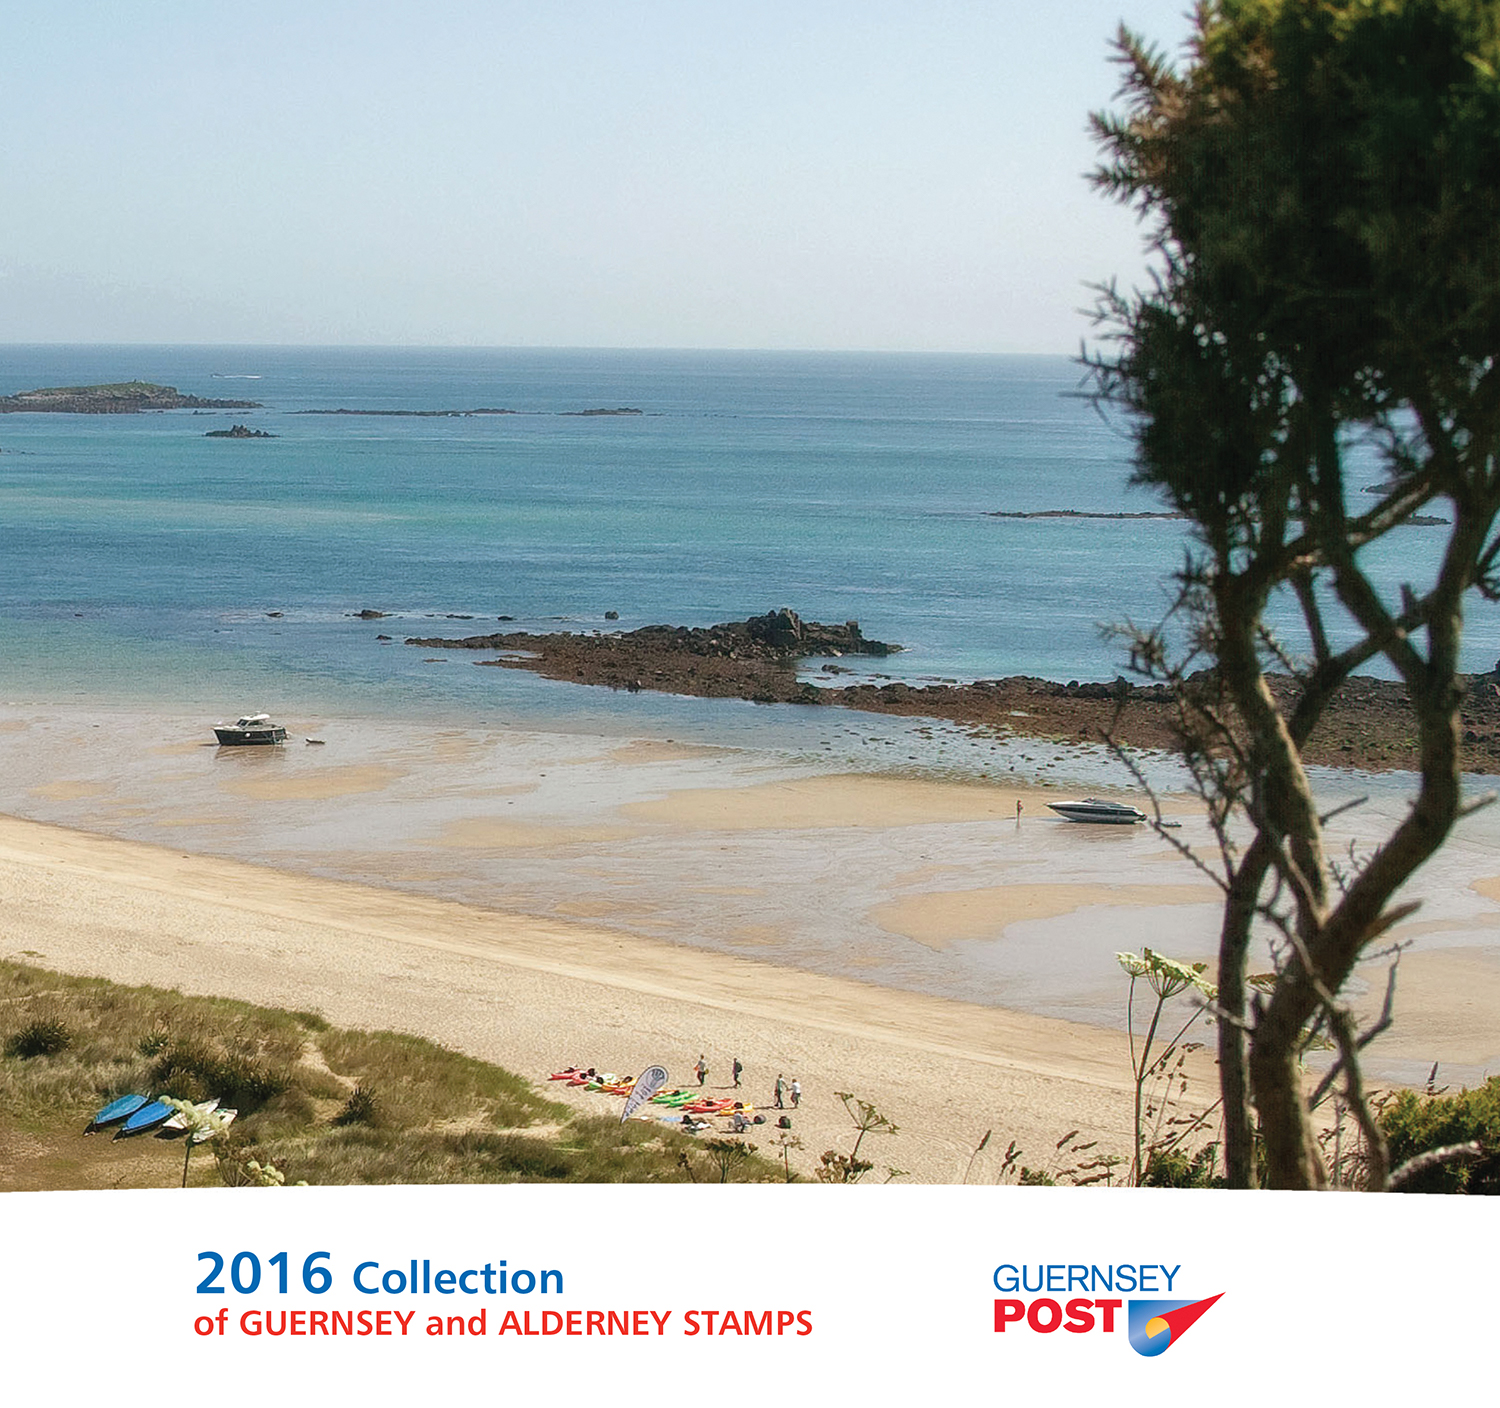 Guernsey Post celebrates a year of stamps